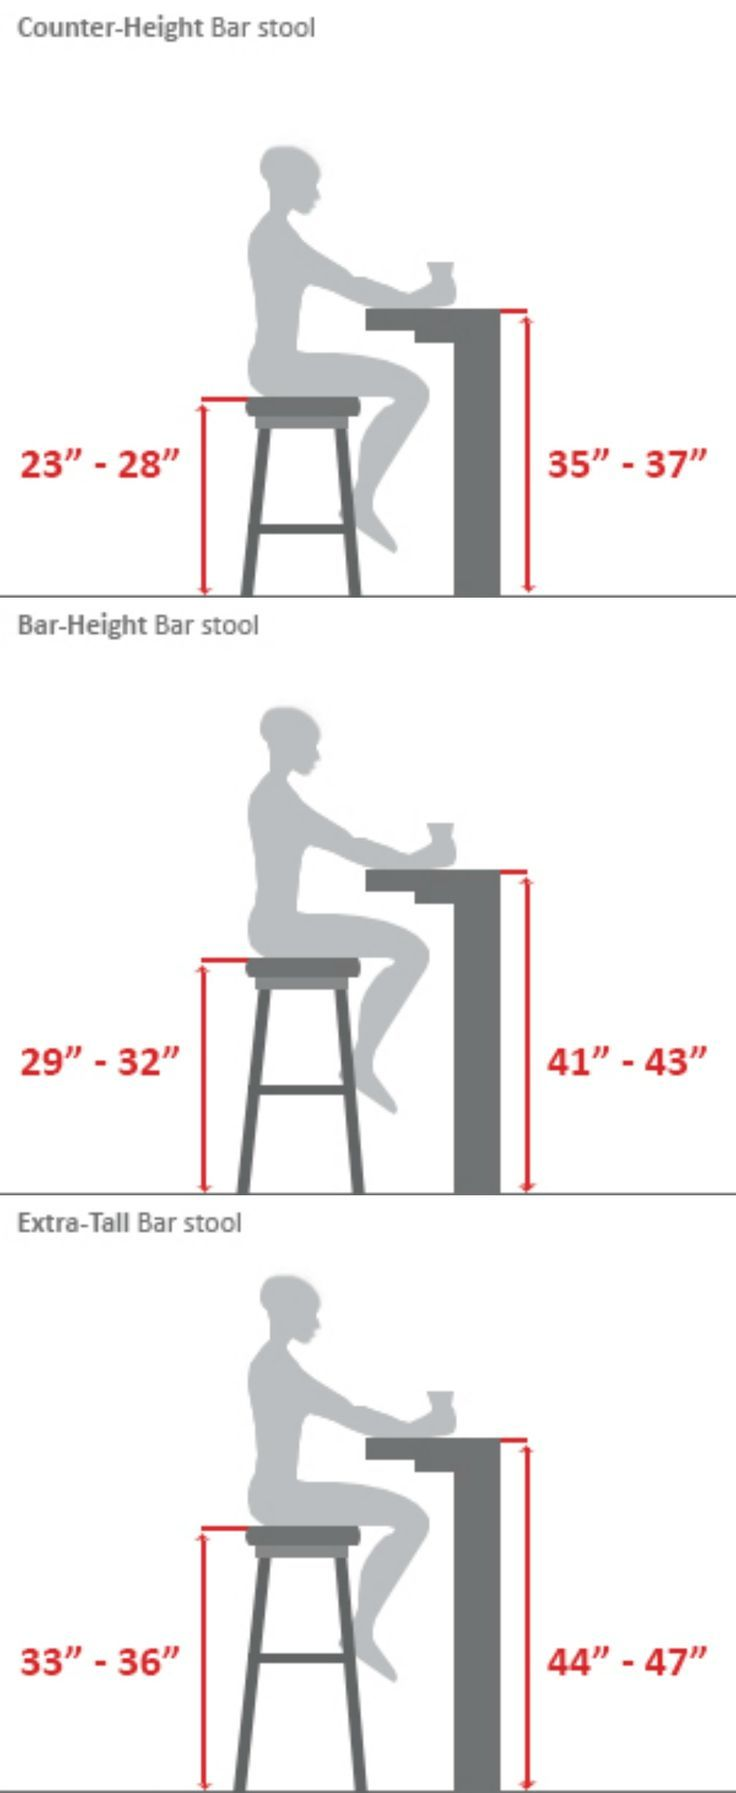 Bar Stool Buying Guide. Helpful for landlords who are concerned about their  (scheduled via http://www.tailwindapp.com?utm_source=pinterest&utm_medium=twpin&utm_content=post1732843&utm_campaign=scheduler_attribution)